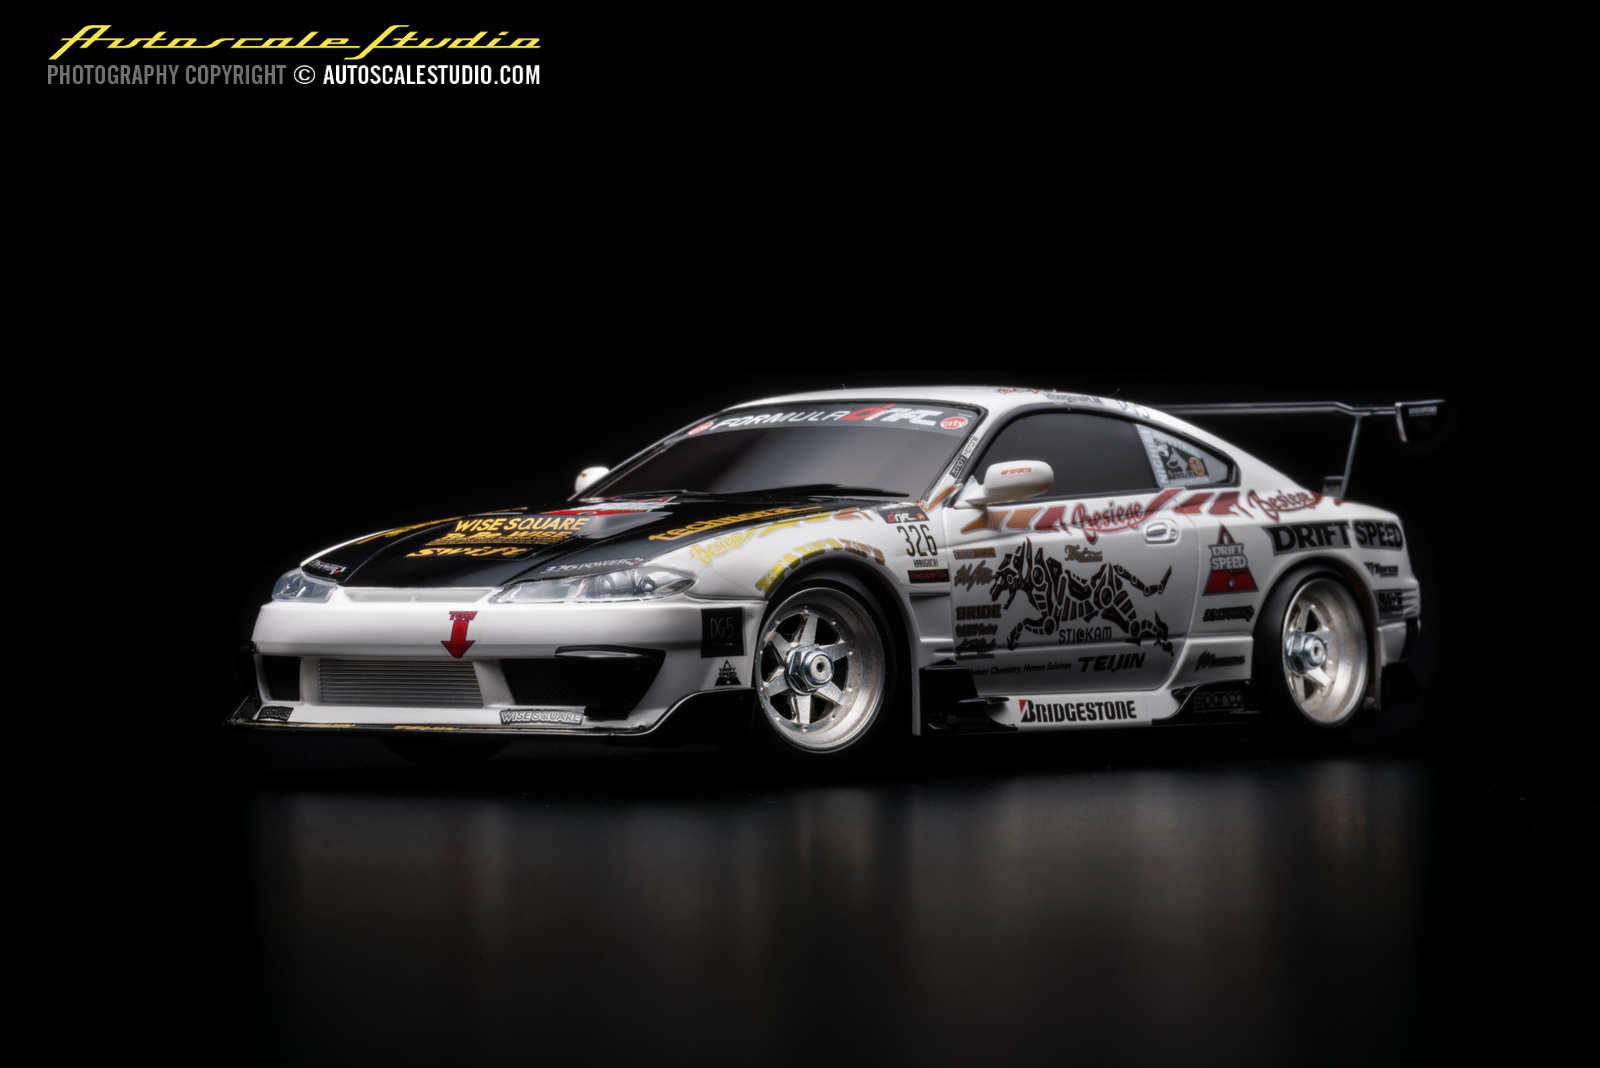 La Collec d'optimaforever - Page 31 Autoscalestudio_MZP413MH-5030